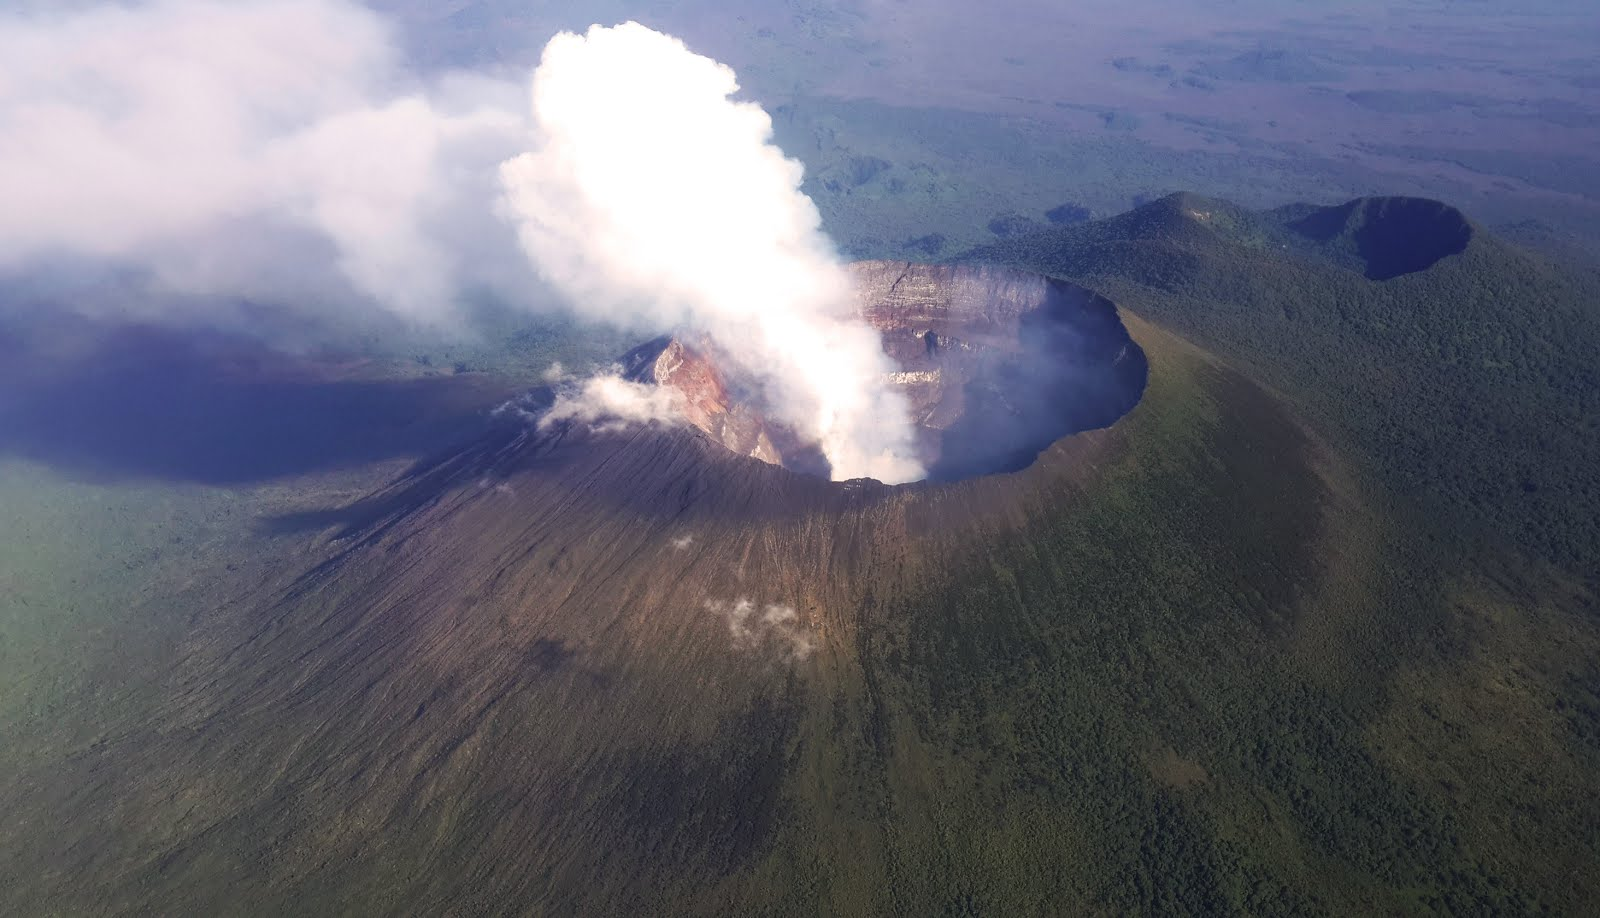 Democratic Republic of the Congo's Nyiragongo volcano is releasing up to 50,000 tonnes of polluted